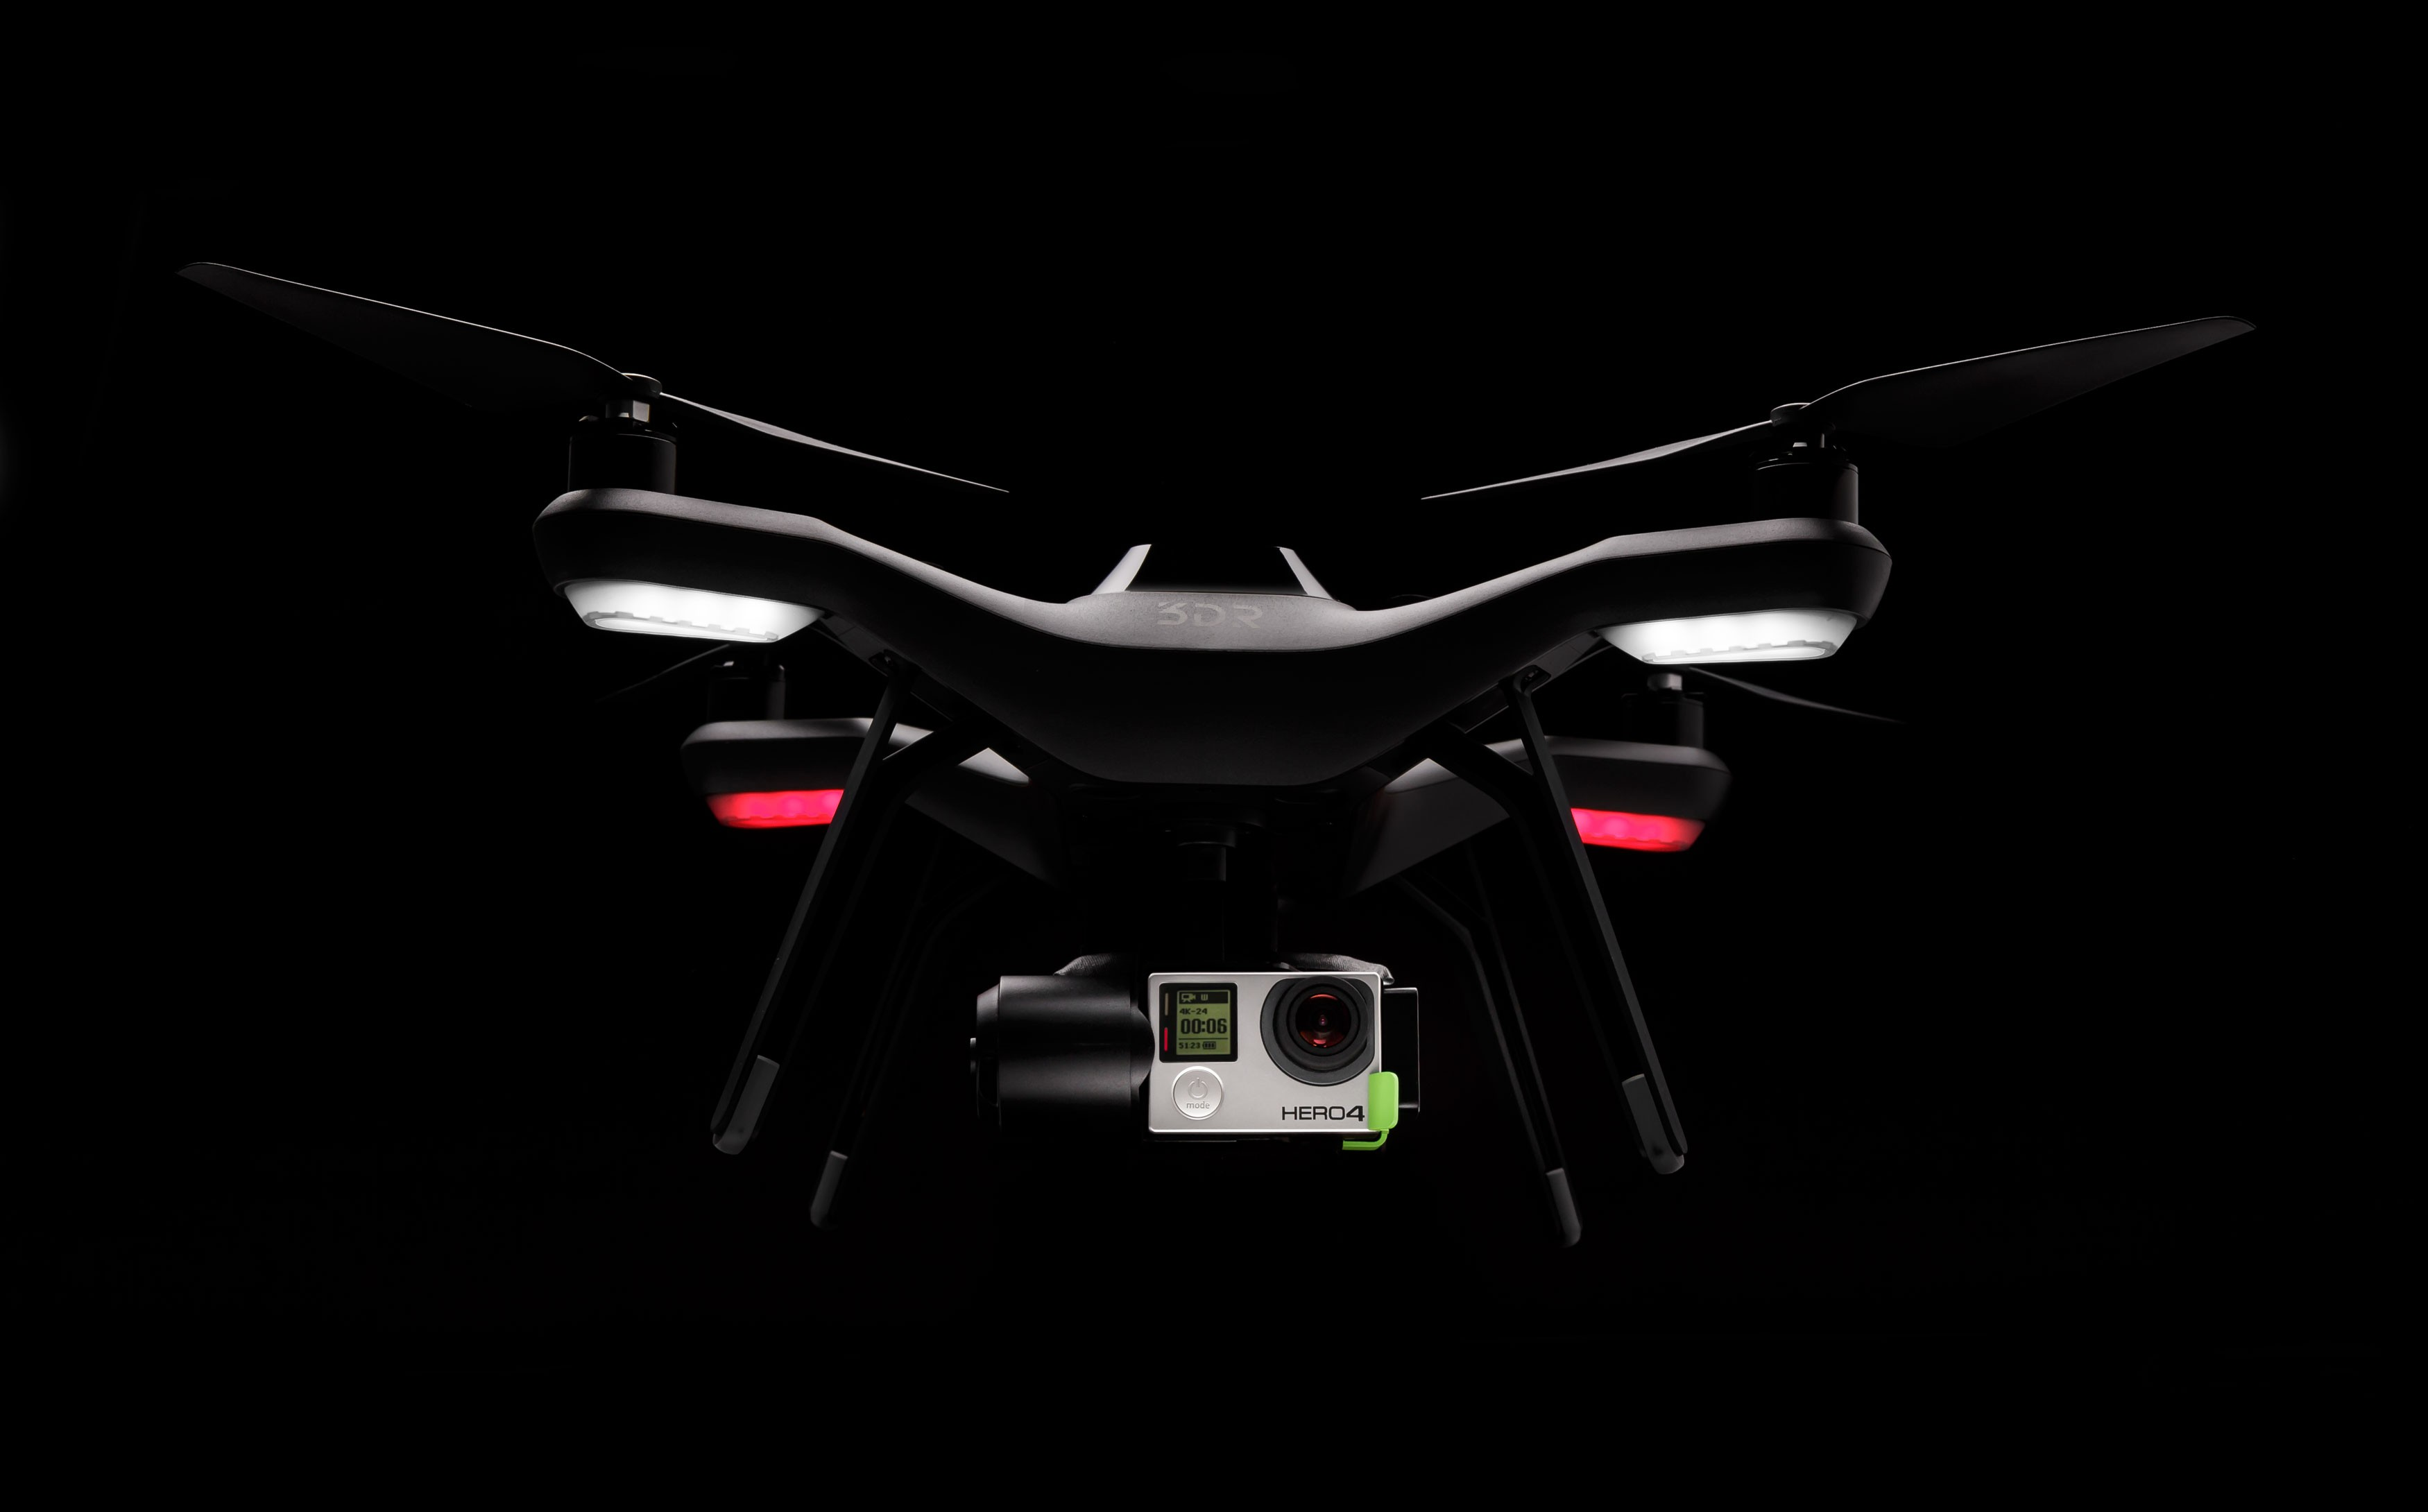 3DR's Solo Drone Boasts Dual Linux Computers Running